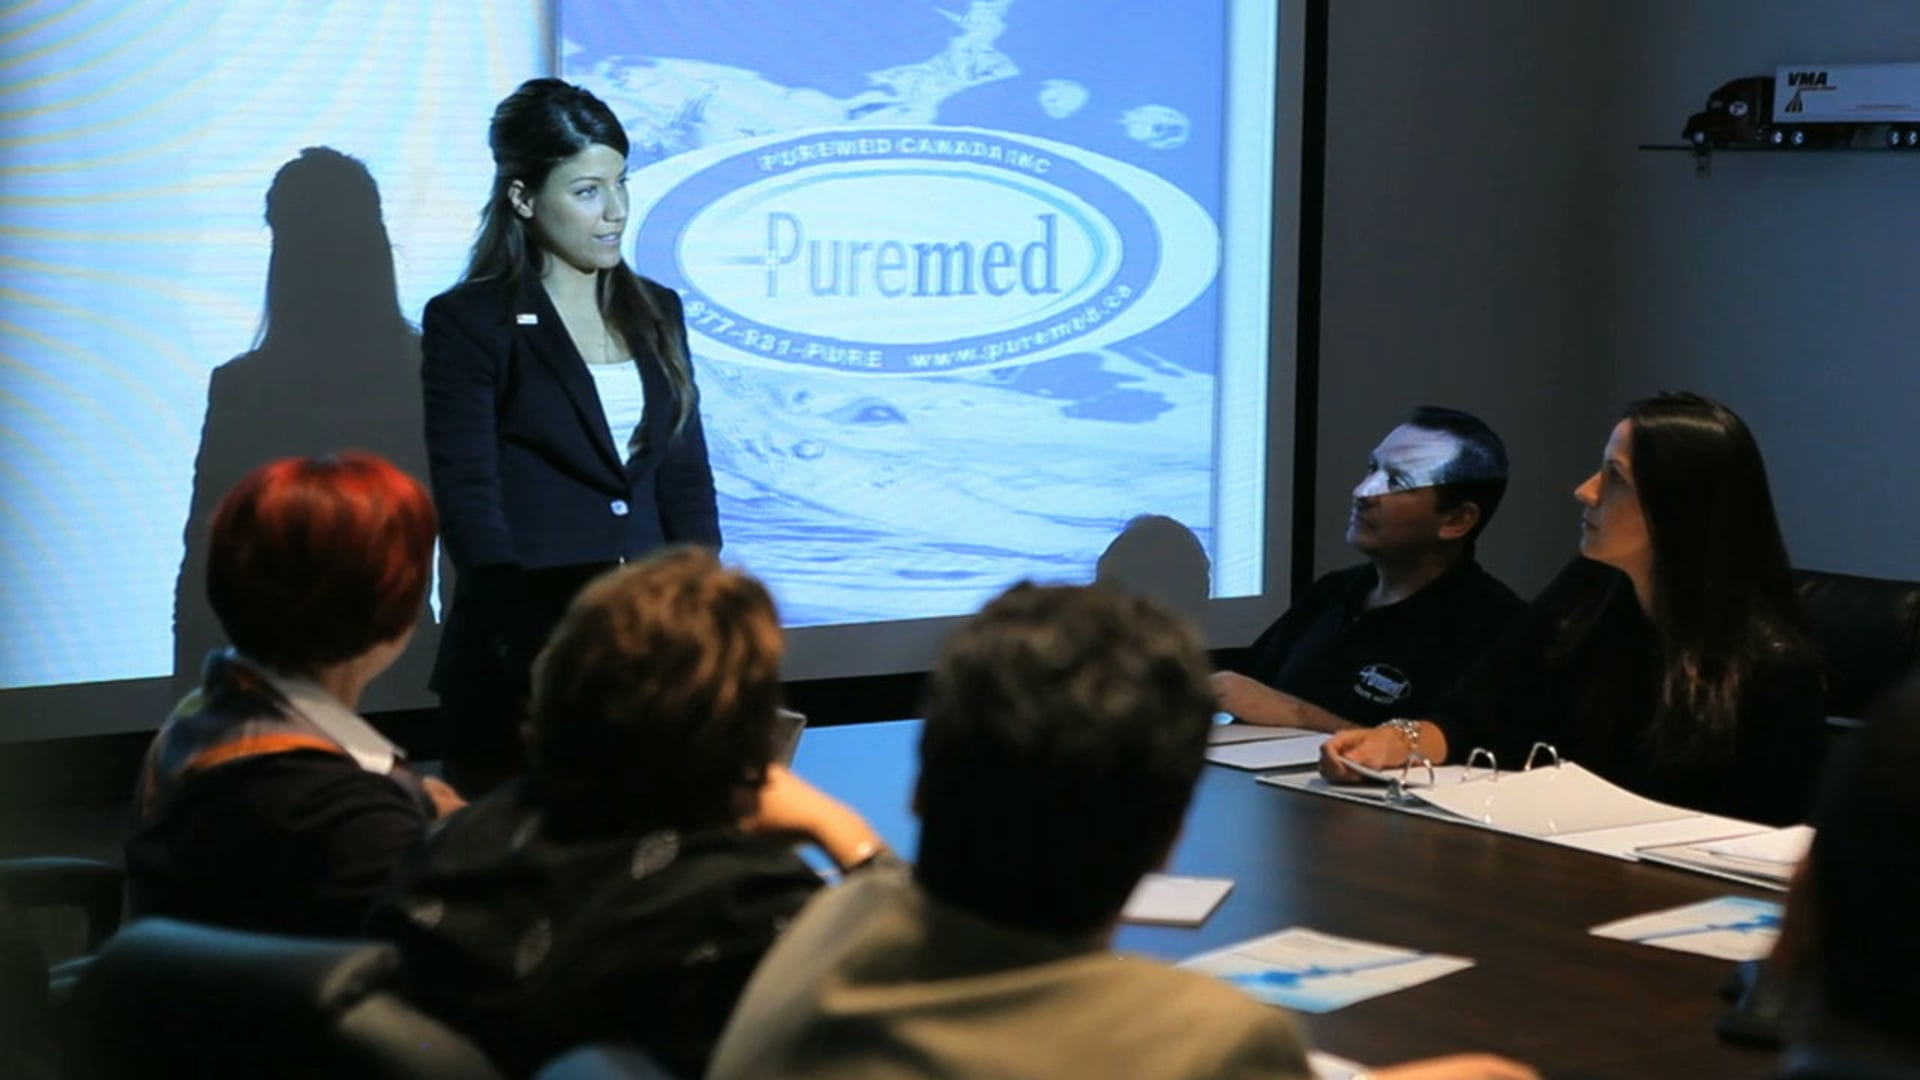 WE ARE: PUREMED CANADA - Promotional Video by Marrone